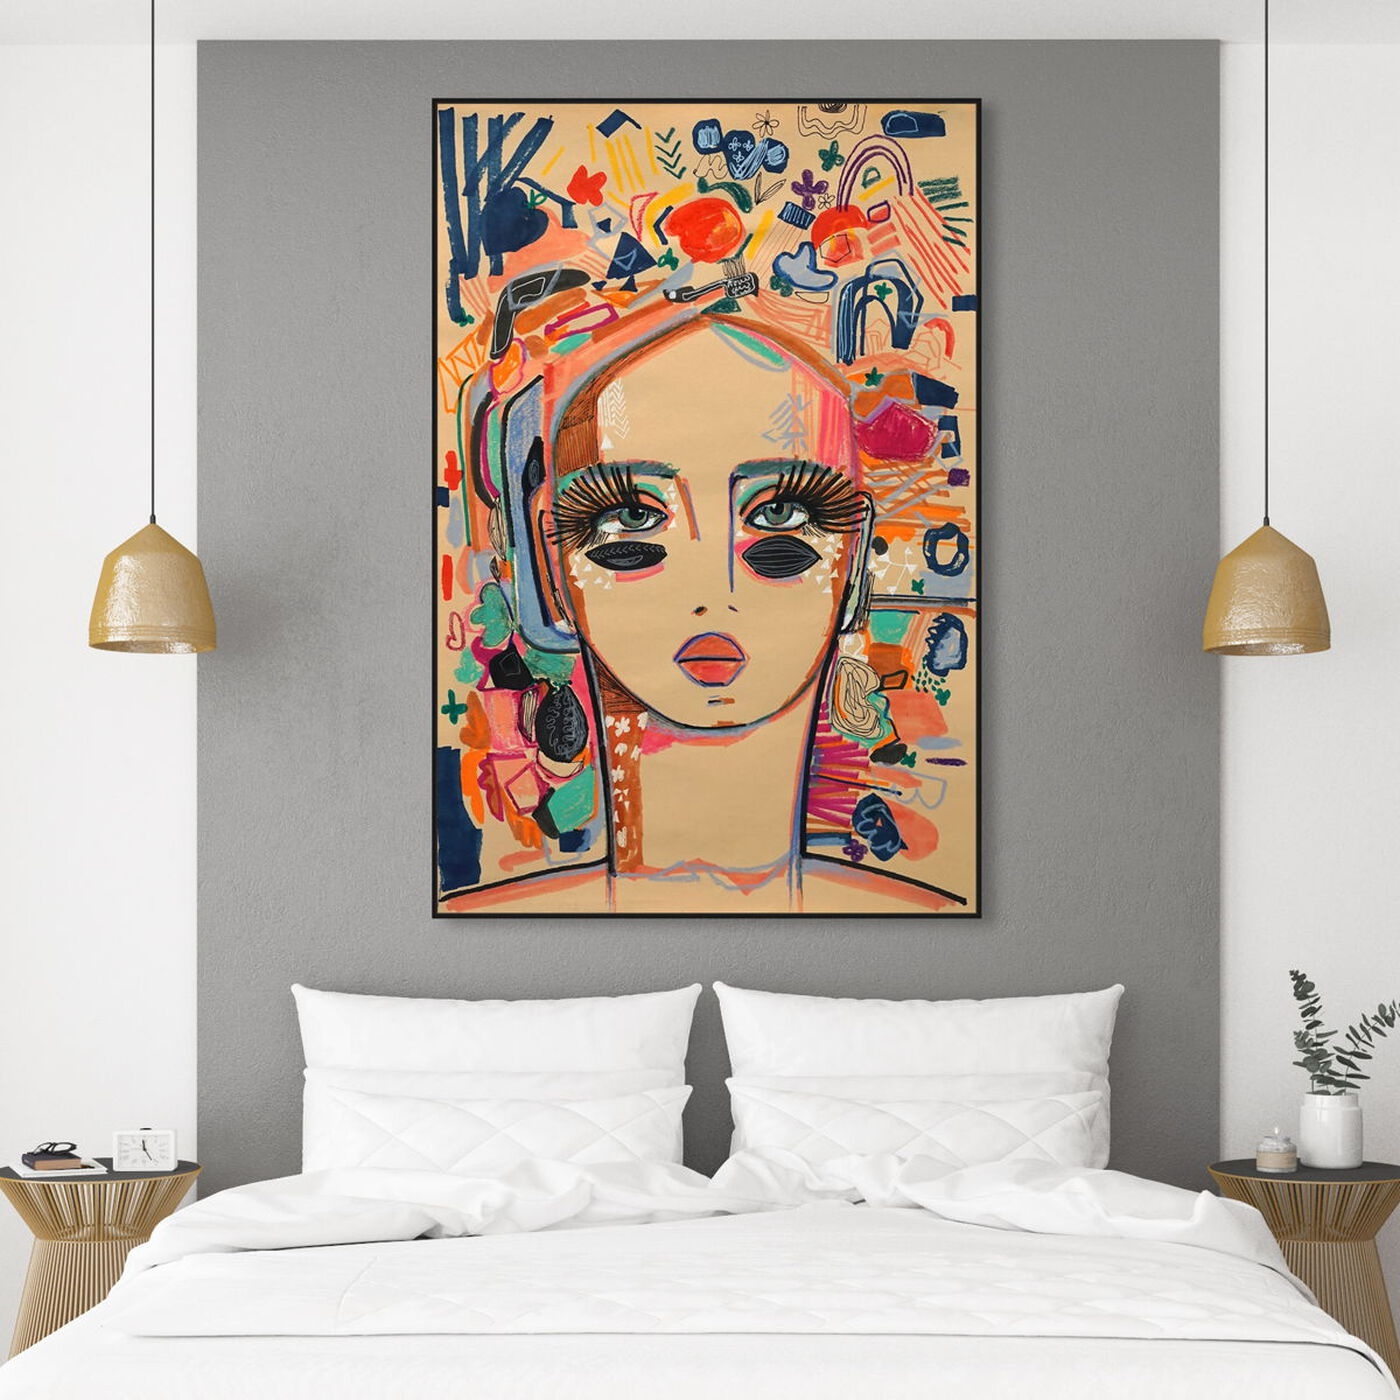 Hanging view of Rosalina - In Love With Coco featuring fashion and glam and portraits art.